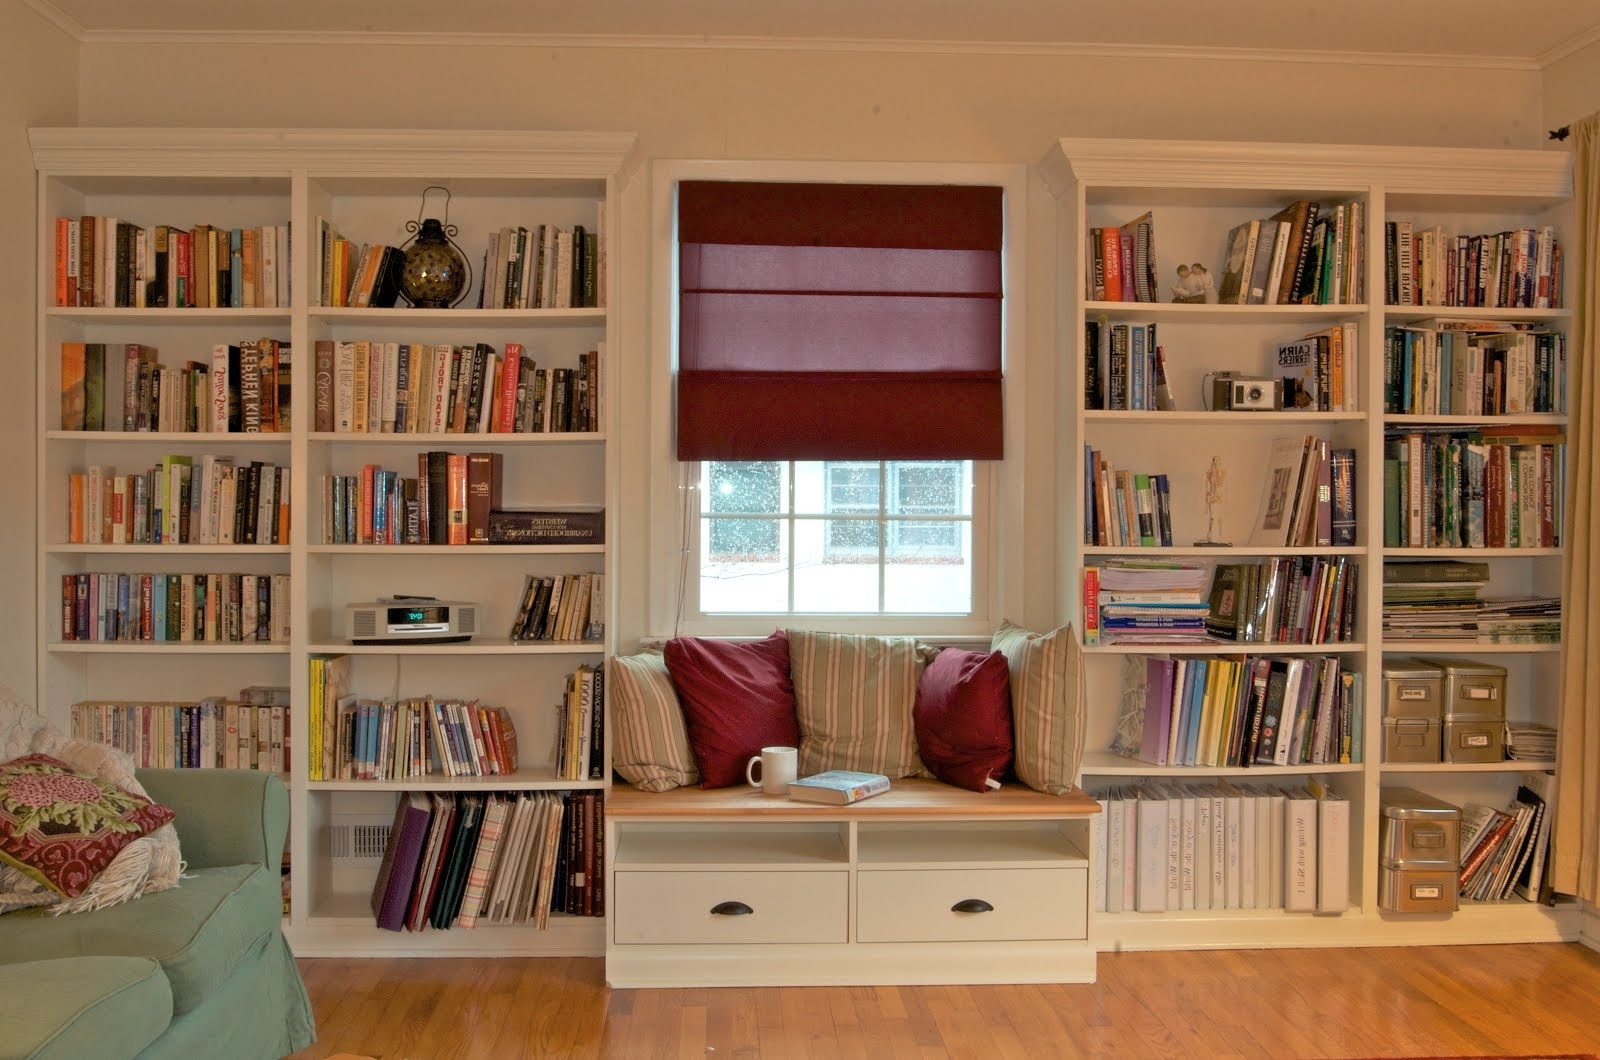 Trendy Built In Bookshelves With Window Seat For Under $350 – Ikea Hackers Regarding Build Built In Bookcases (View 11 of 15)